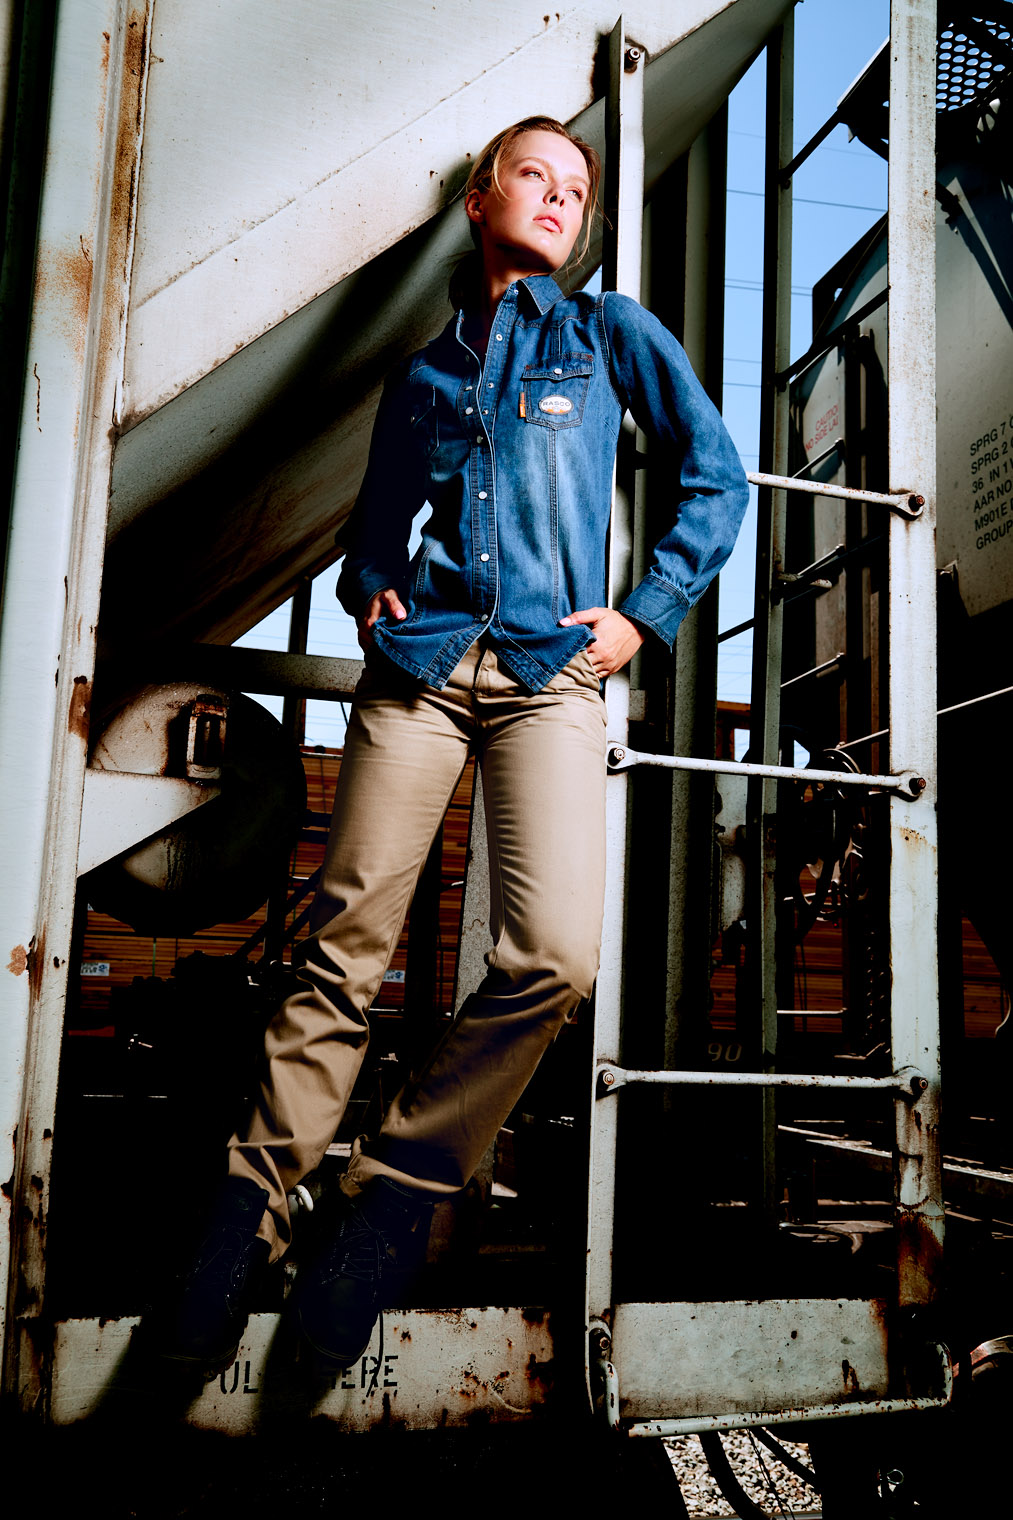 girl in denim work clothes on freight train